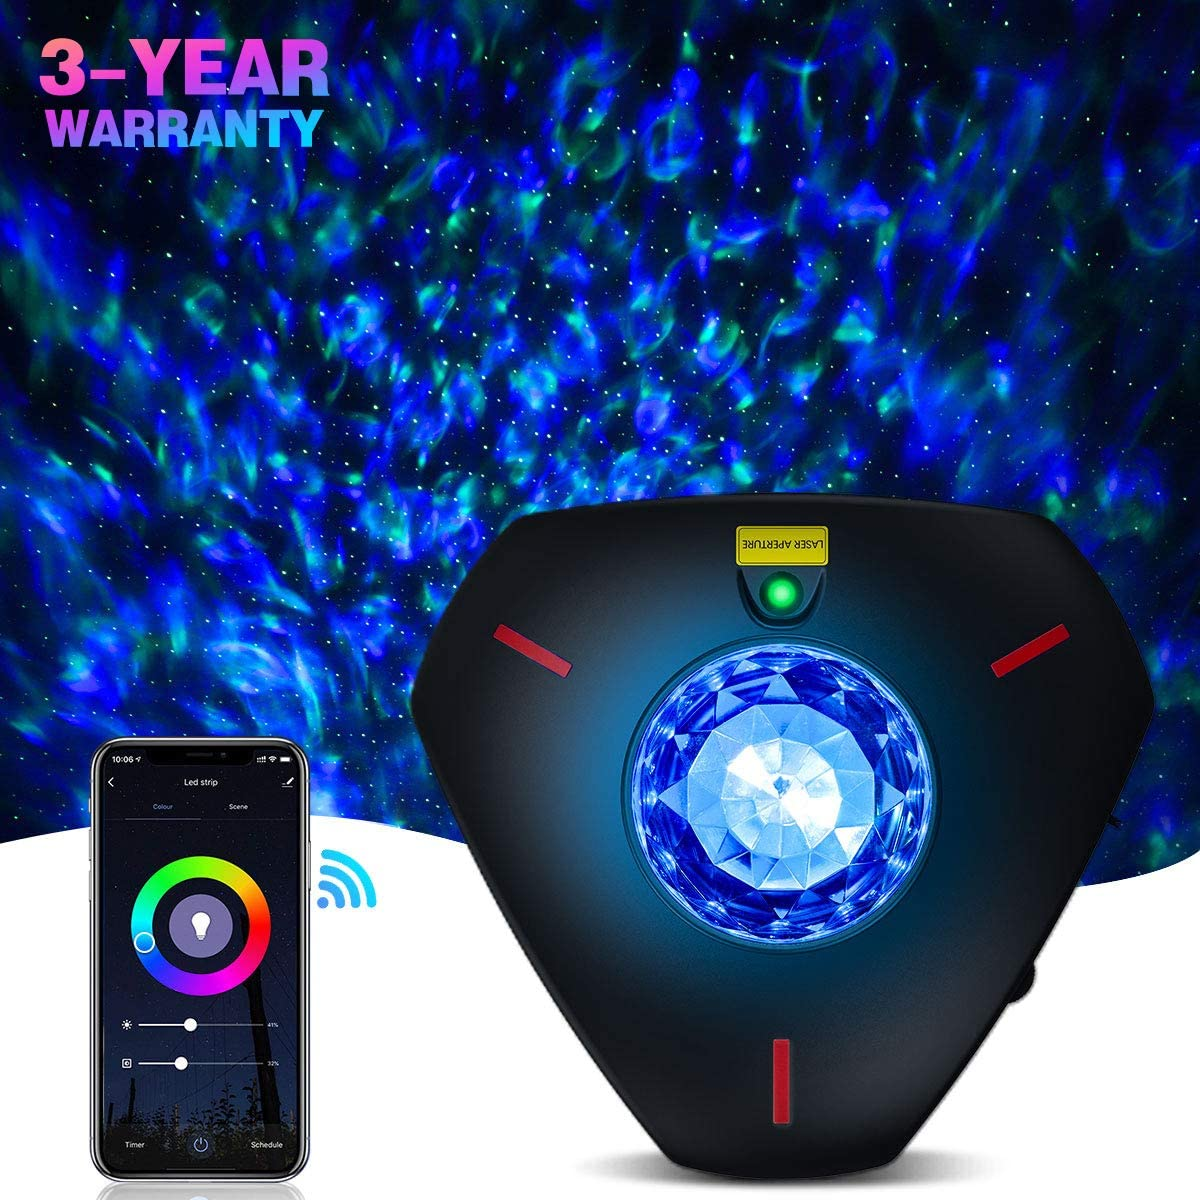 Star Projector Galaxy Projector Night Light Work with Alexa Bluetooth Music Speaker Ocean Wave Star Light Projector Star Lights for Bedroom for Baby Kids Adults Decoration Party Room WiFi Control